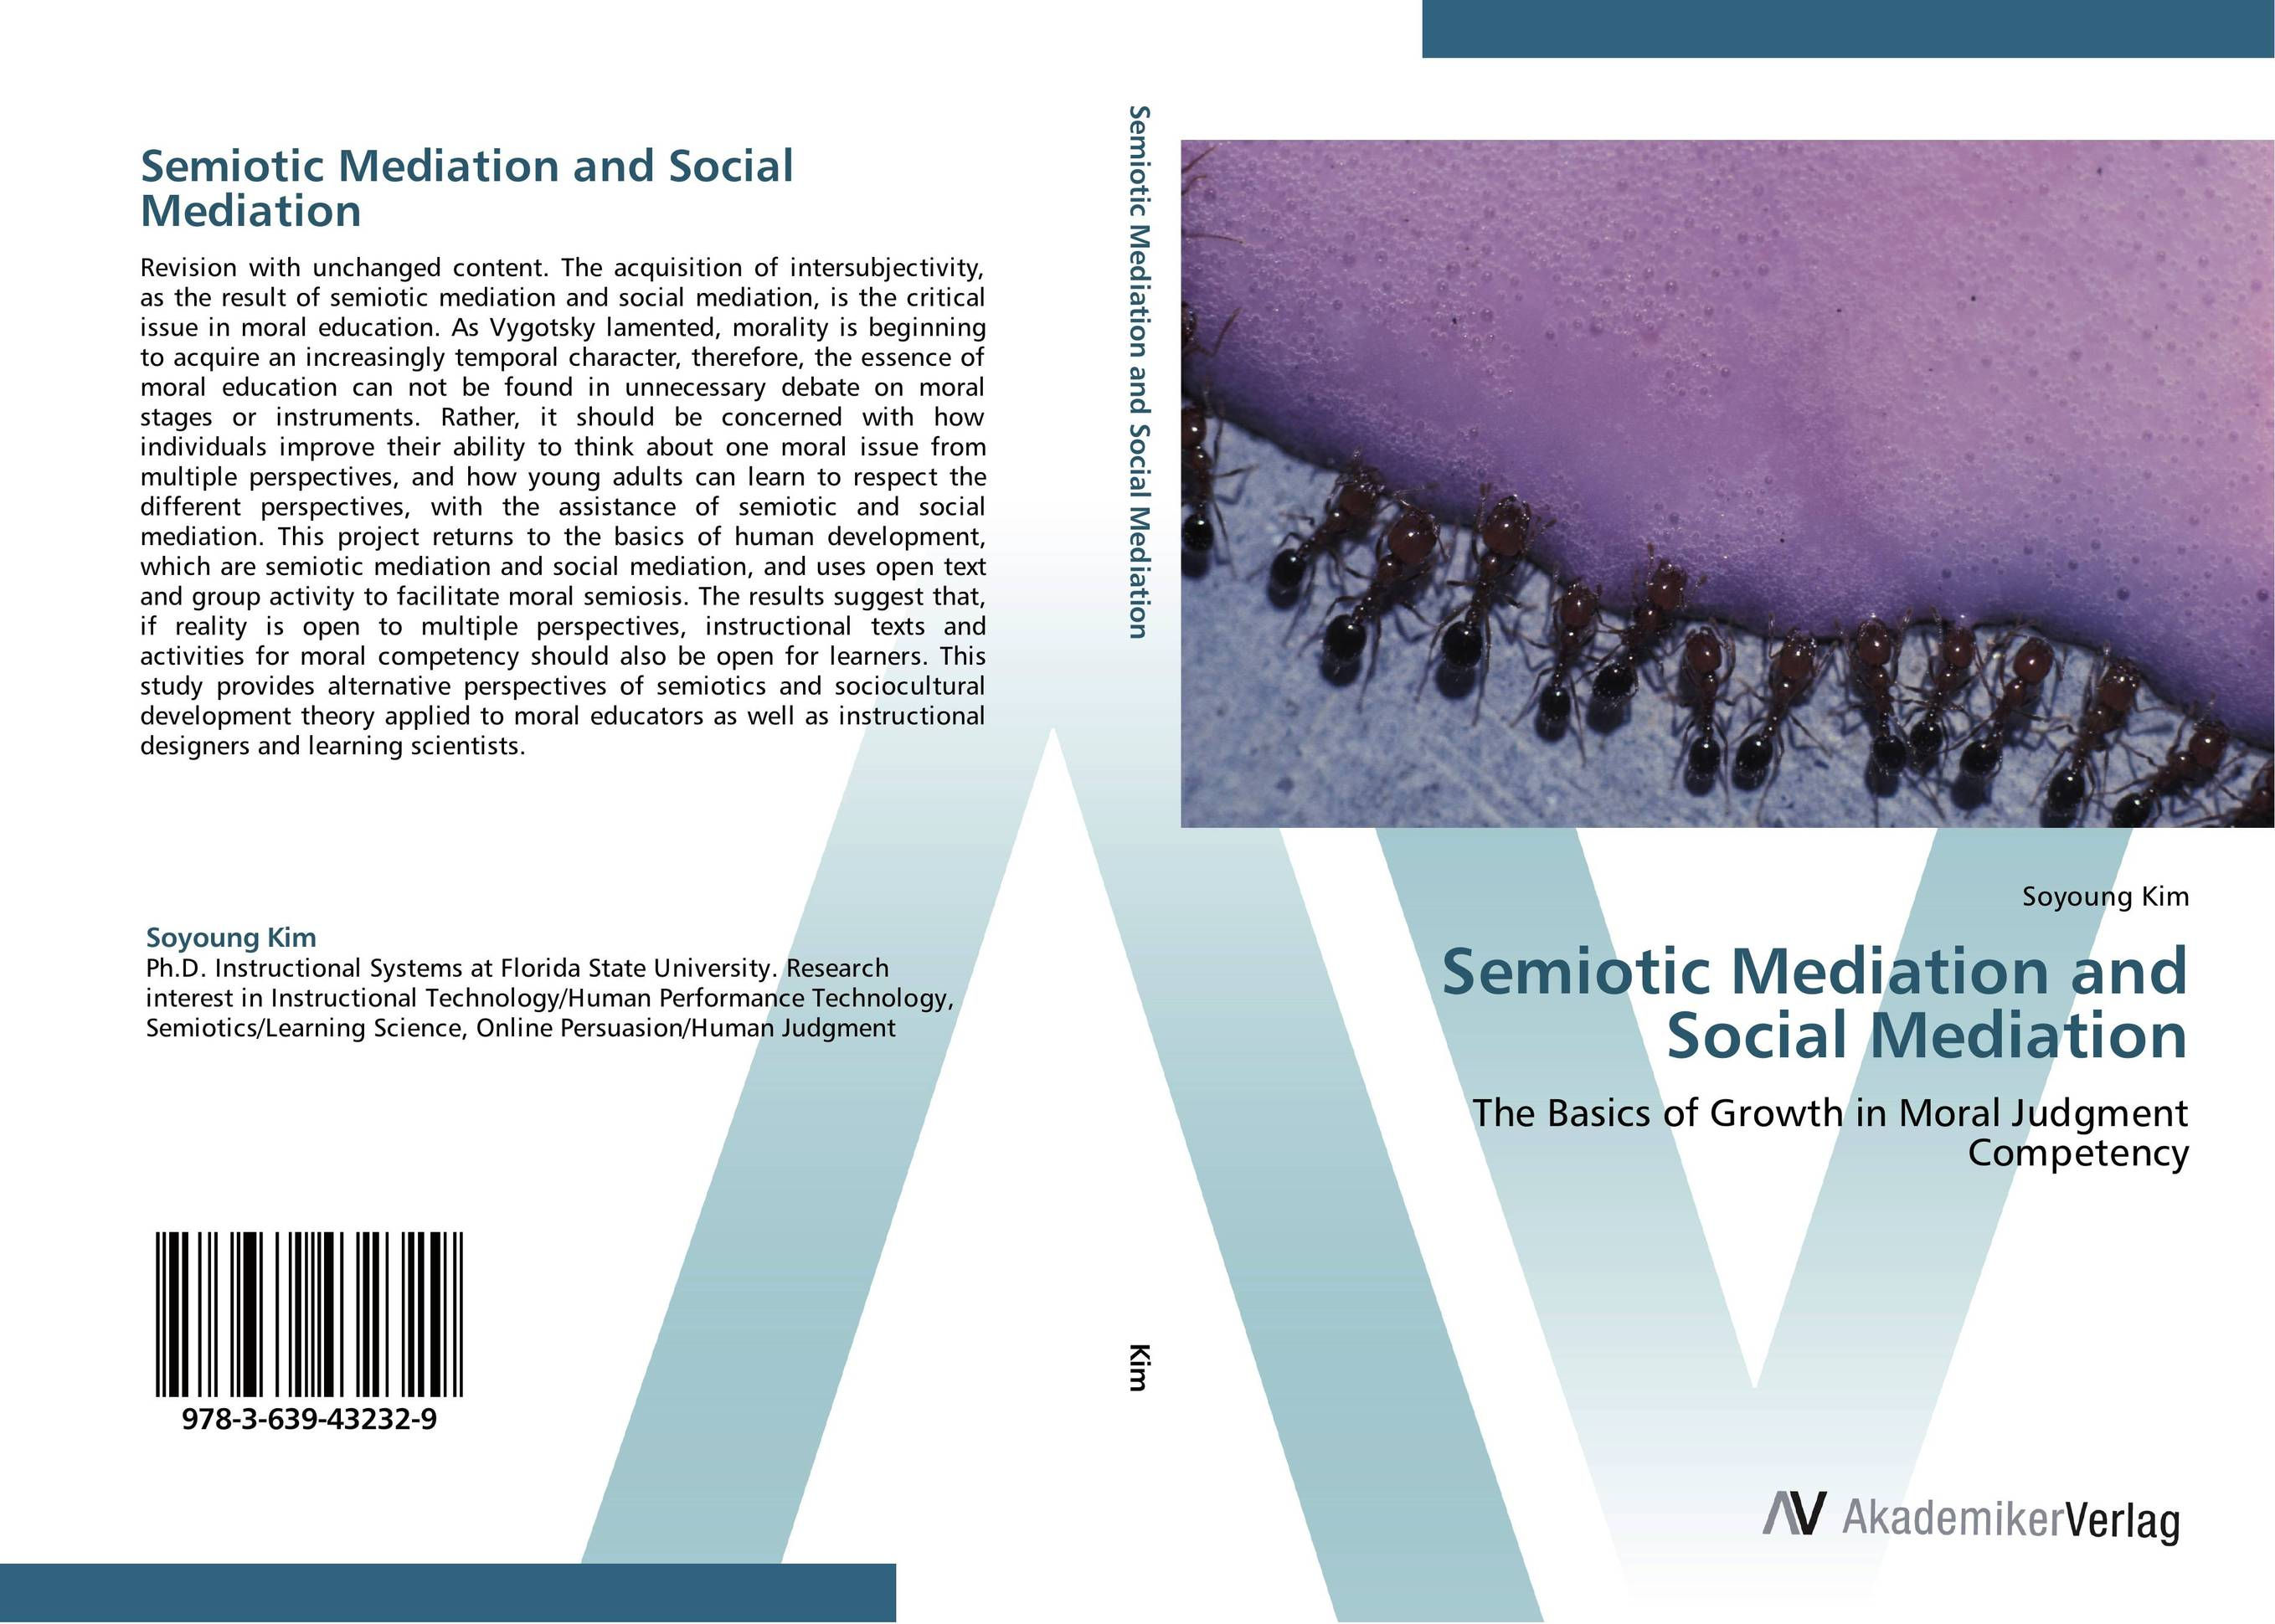 Semiotic Mediation and Social Mediation